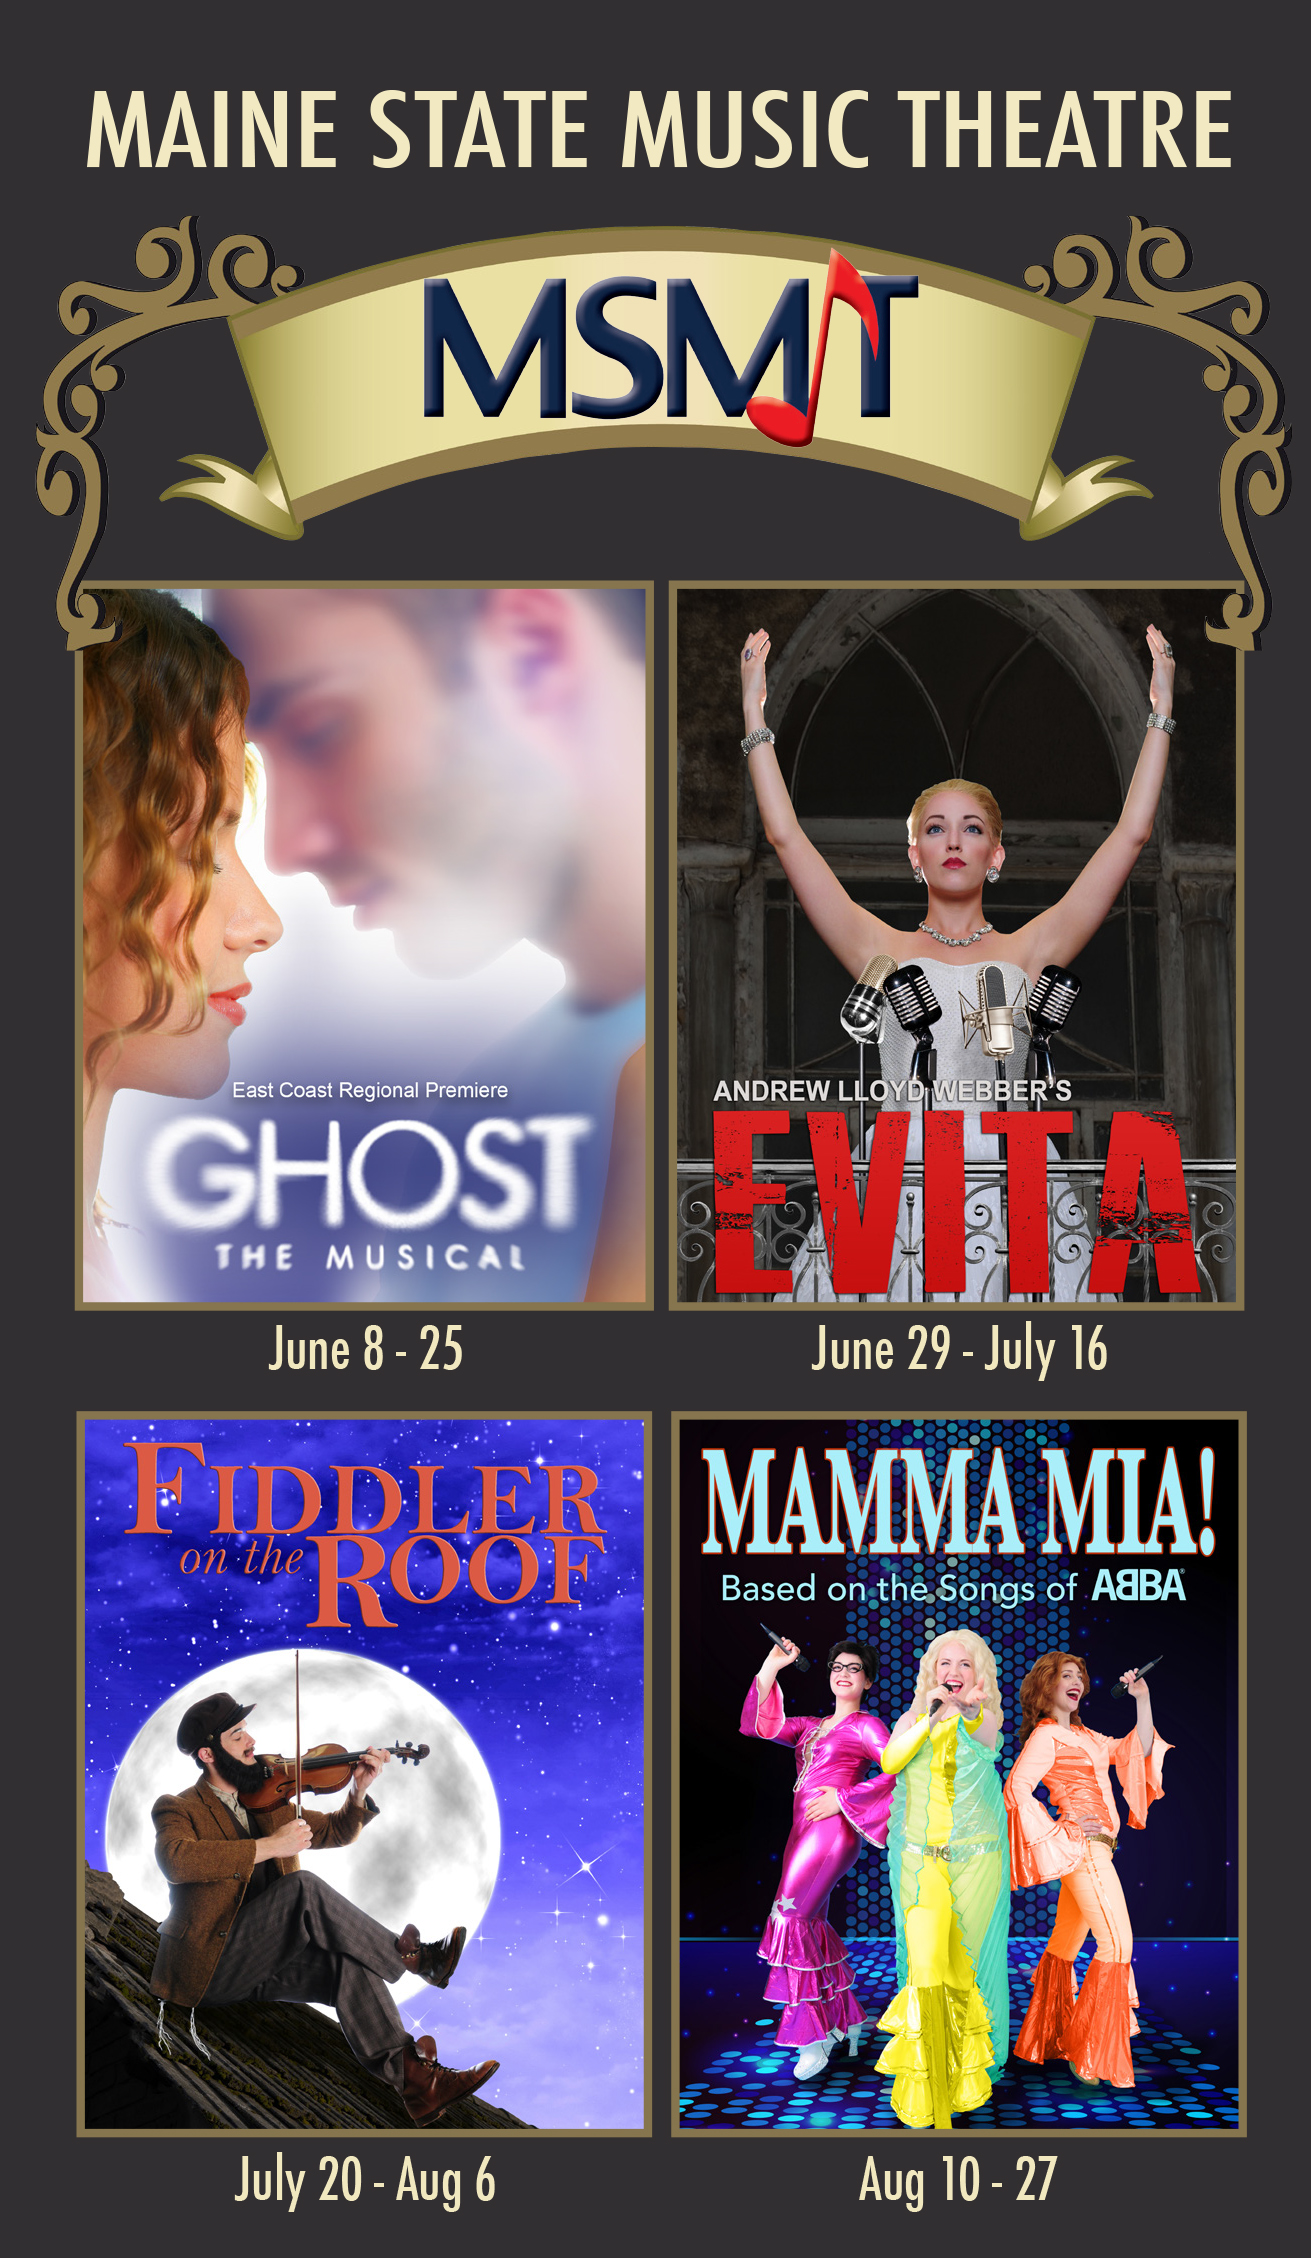 Maine State Music Theatre - Southern Midcoast Maine Chamber